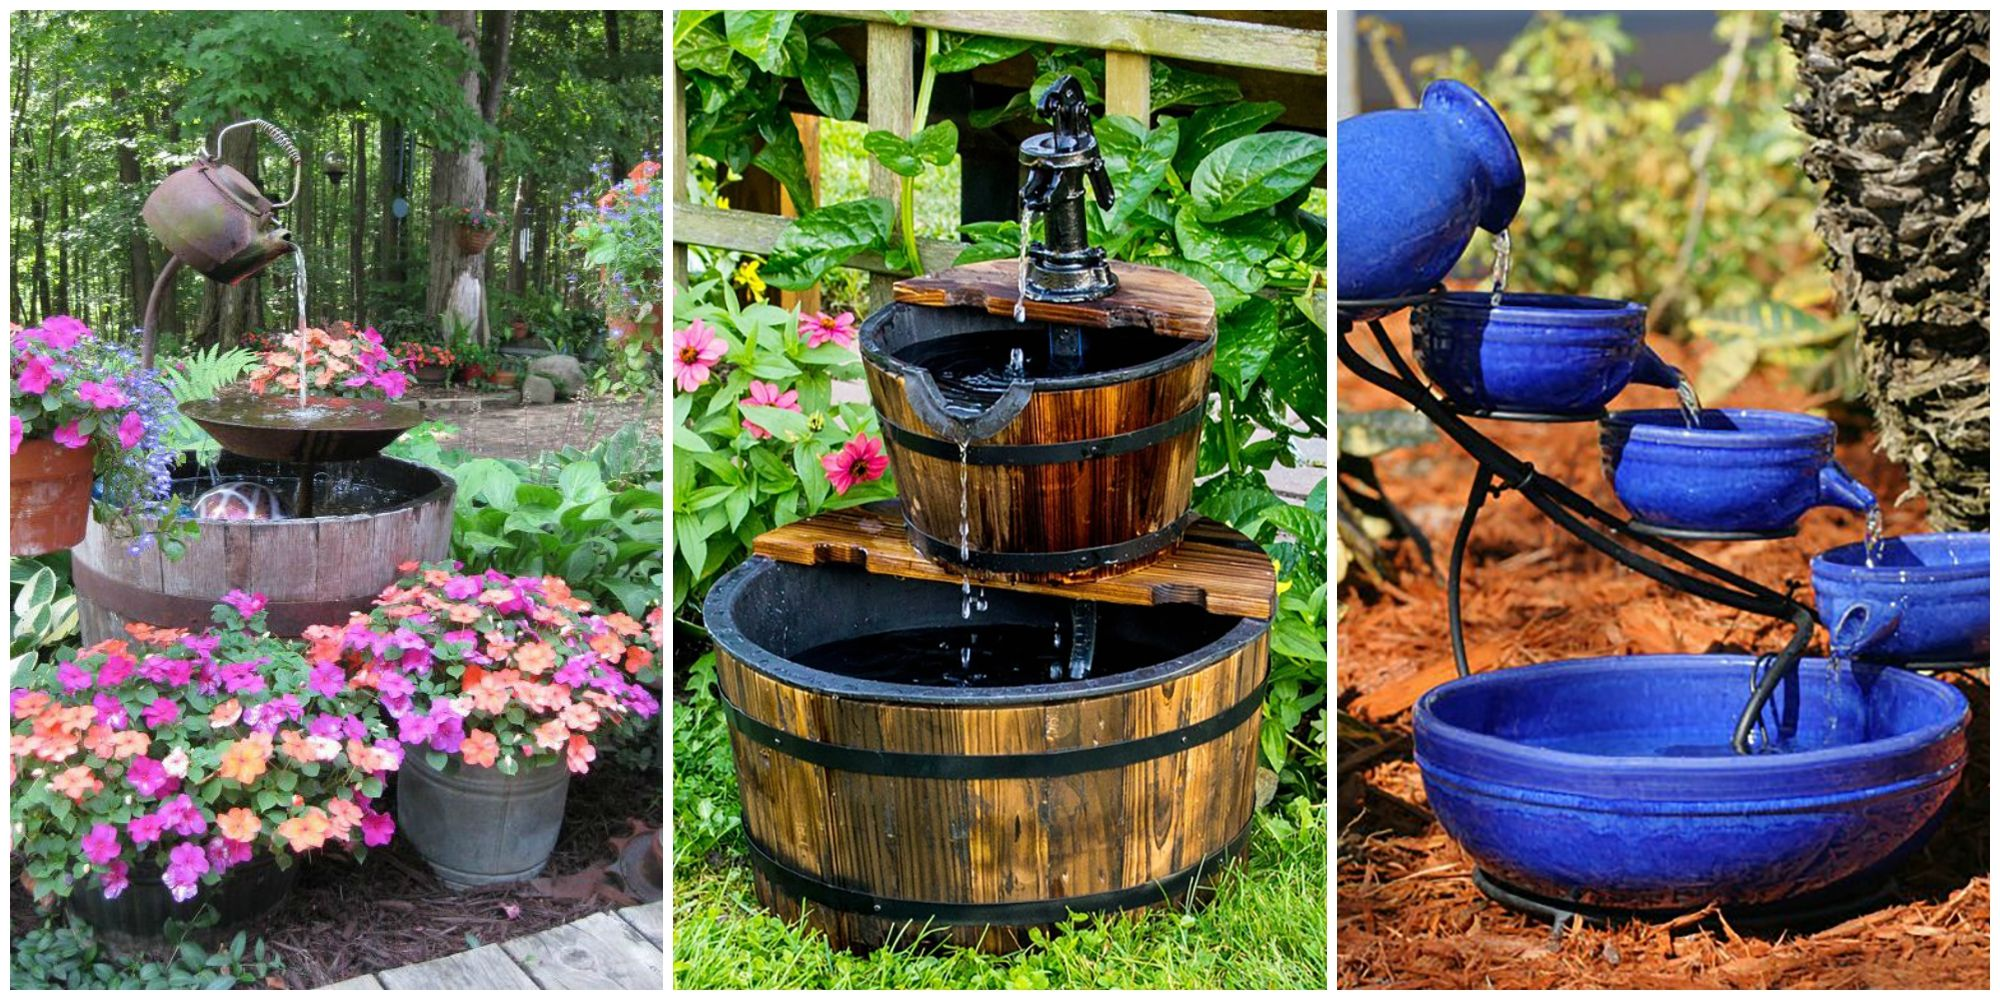 18 Outdoor Fountain Ideas How To Make A Garden For Your Backyard